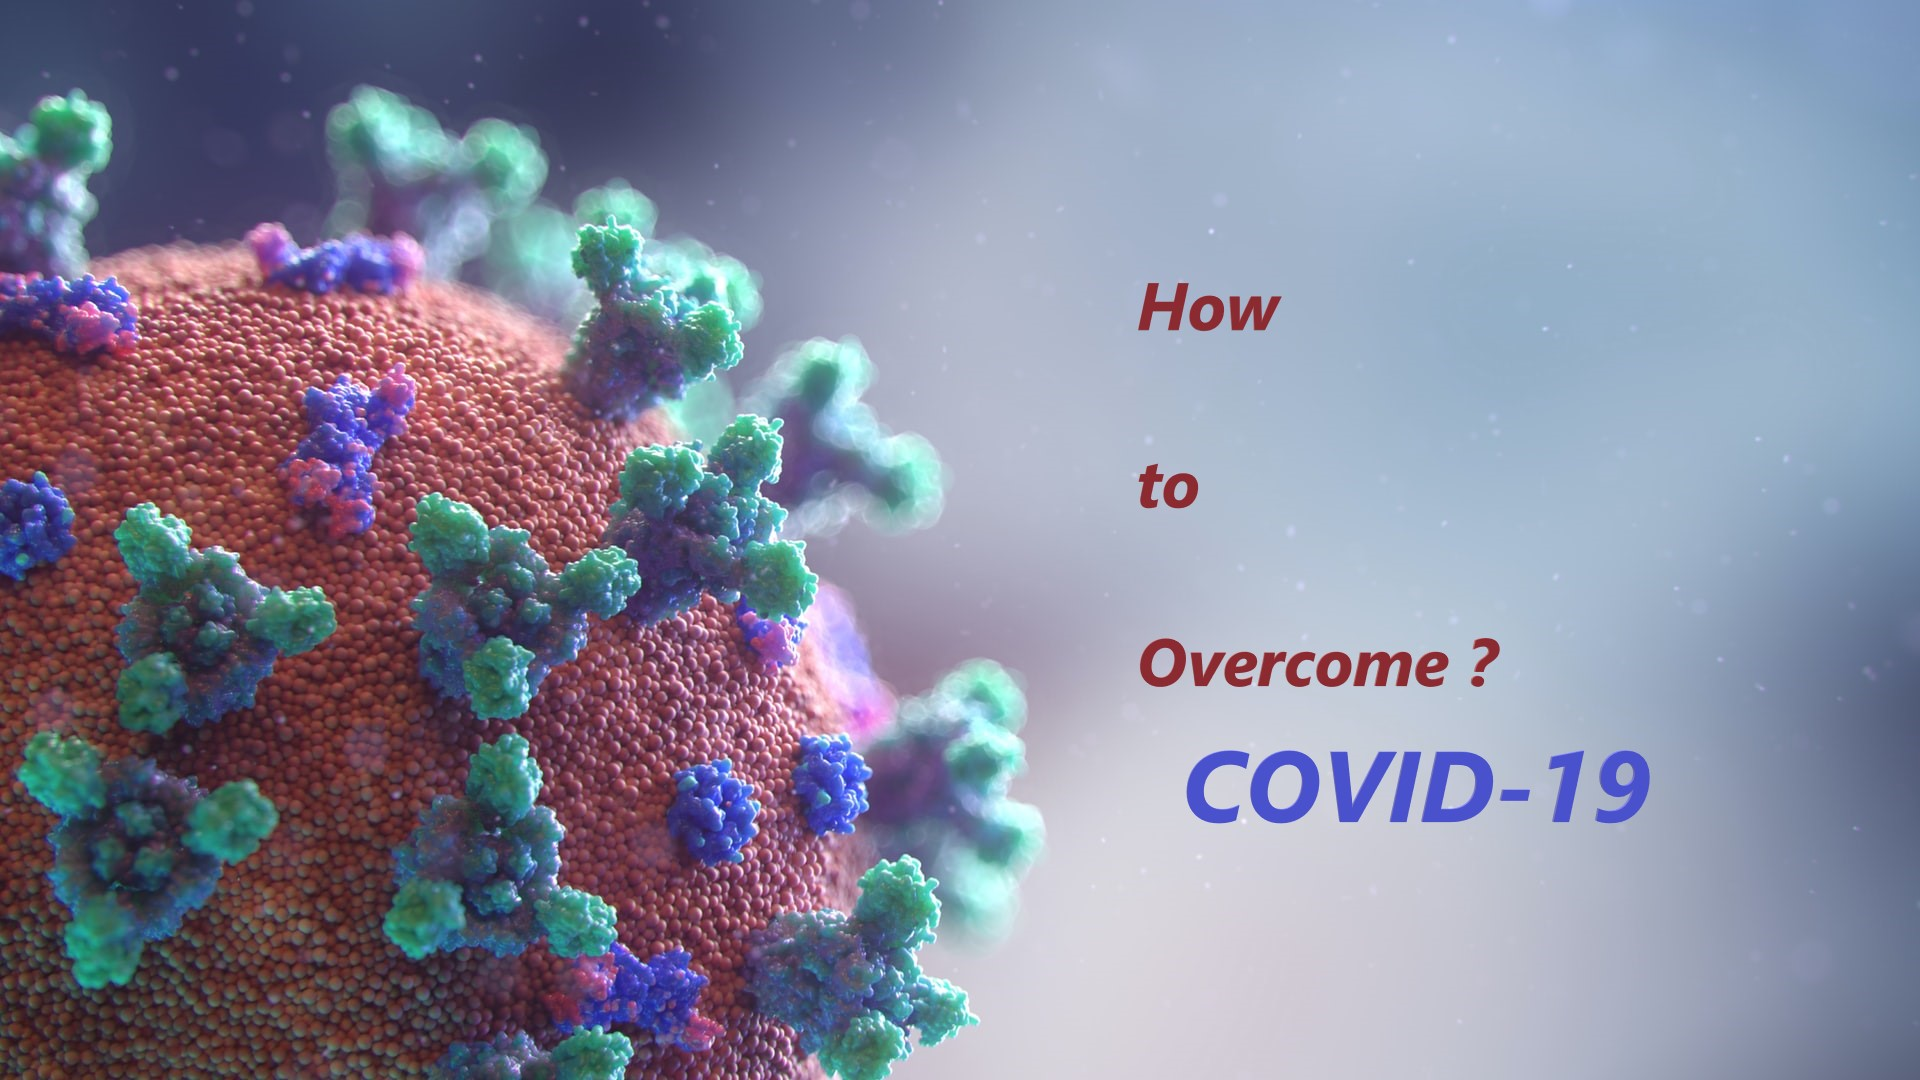 Corona pandemic , Corona pandemic crisis ,COVID-19 PANDEMIC , COVID-19 in United states of America , COVID-19 in brazil, COVID-19 in India, COVID-19 in united kingdom , COVID-19 in Russia, COVID-19 in Africa, COVID-19 in south America, COVID-19 in Canada, COVID-19 in Ireland , COVID-19 in new Zealand , COVID-19 in Thailand, COVID-19 in china , COVID-19 in Nepal , COVID-19 in sri lanka , COVID-19 in Egypt, COVID-19 in Italy, COVID-19 in spain, COVID-19 in Norway, COVID-19 in Sweden , COVID-19 QUARANTINE ,self isolation , COVID-19 in Germany , COVID-19 in Australia , COVID-19 in Austria , Corona pandemic depression , Corona pandemic anxiety, Corona pandemic financial crisis, Corona pandemic economical loss, Corona pandemic business loss, Corona pandemic job loss , Corona pandemic situation lay off, psychological support in corona, family time in lock down , professional growth in lock down , learn a new skill in lock down , spend quality time during lock down , Confident in corona pandemic ,Healthy foods for immunity, low immunity in corona, lungs healthy in corona, Have quality time with family in lock down , corona recovery , countries in corona phase, removing lock down , no more quarantine , isolation , loneliness and depression , parenting kids in lock down , spend time with family , after corona pandemic , ready to face corona relief , recovering phase of corona, COVID -19 , How to manage life in corona pandemic,